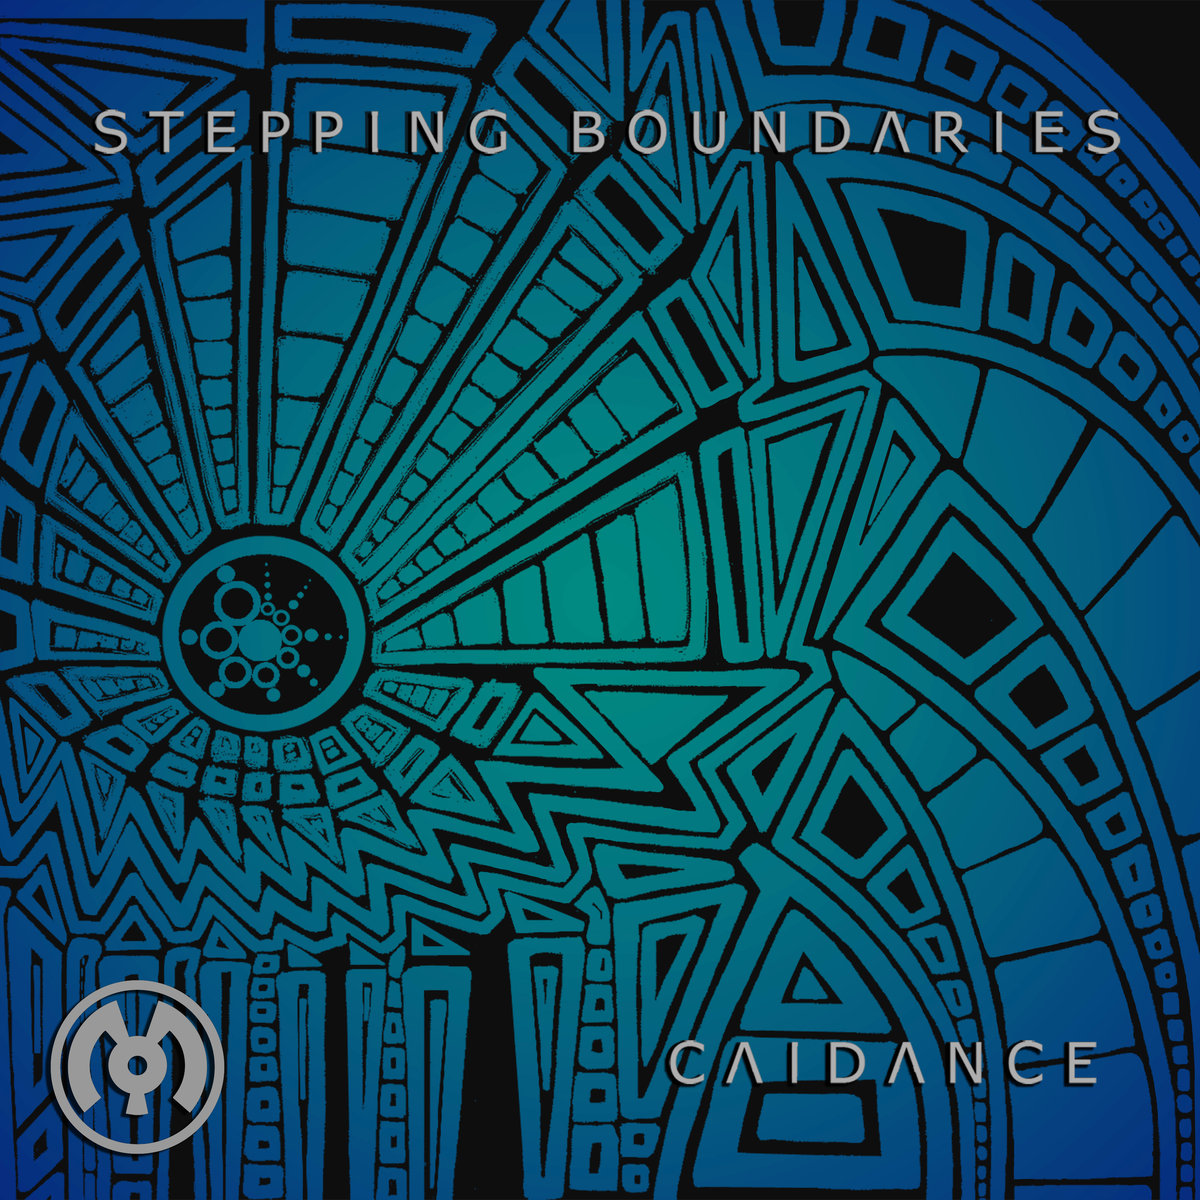 Caidance feat. Elly Martinez - Agua Azul @ 'Stepping Boundaries' album (electronic, dubstep)